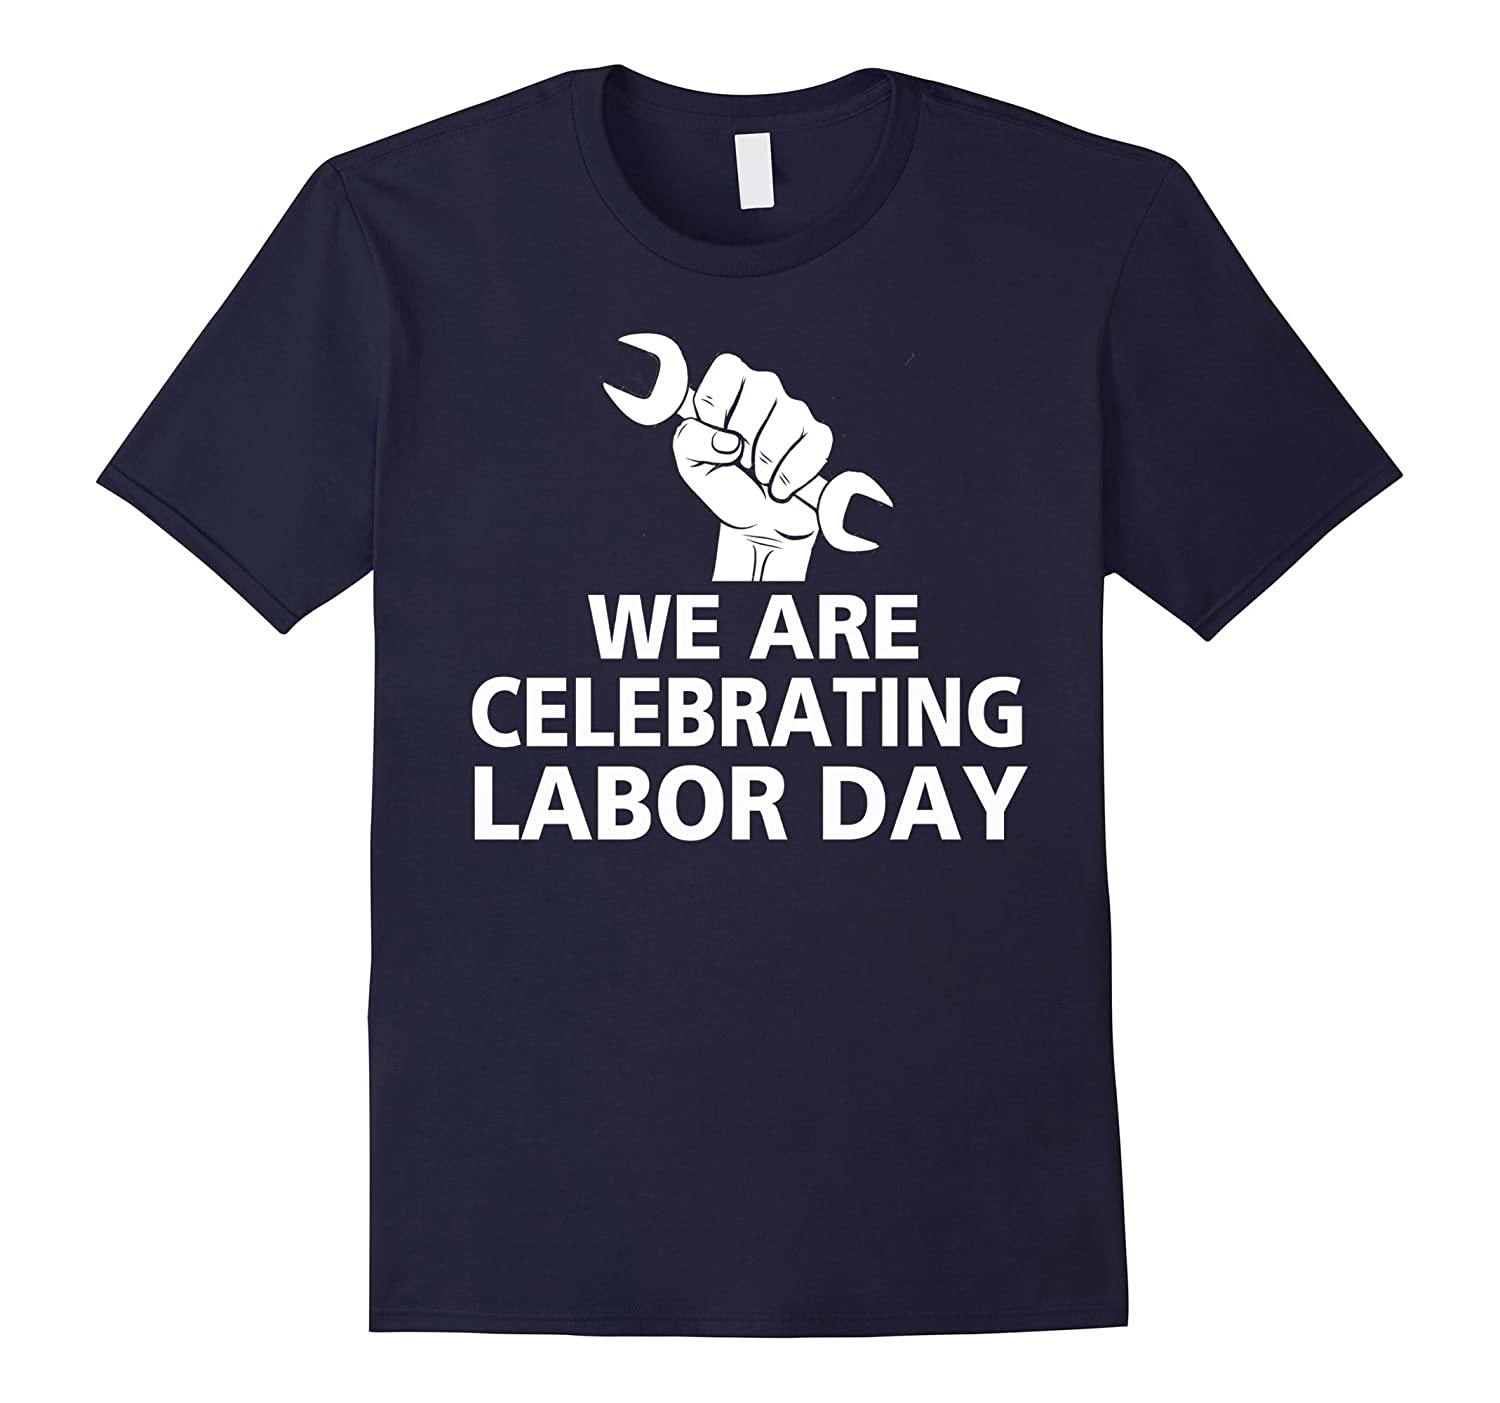 We Are Celebrating Labor Day T-Shirt / Labor Day gifts-BN